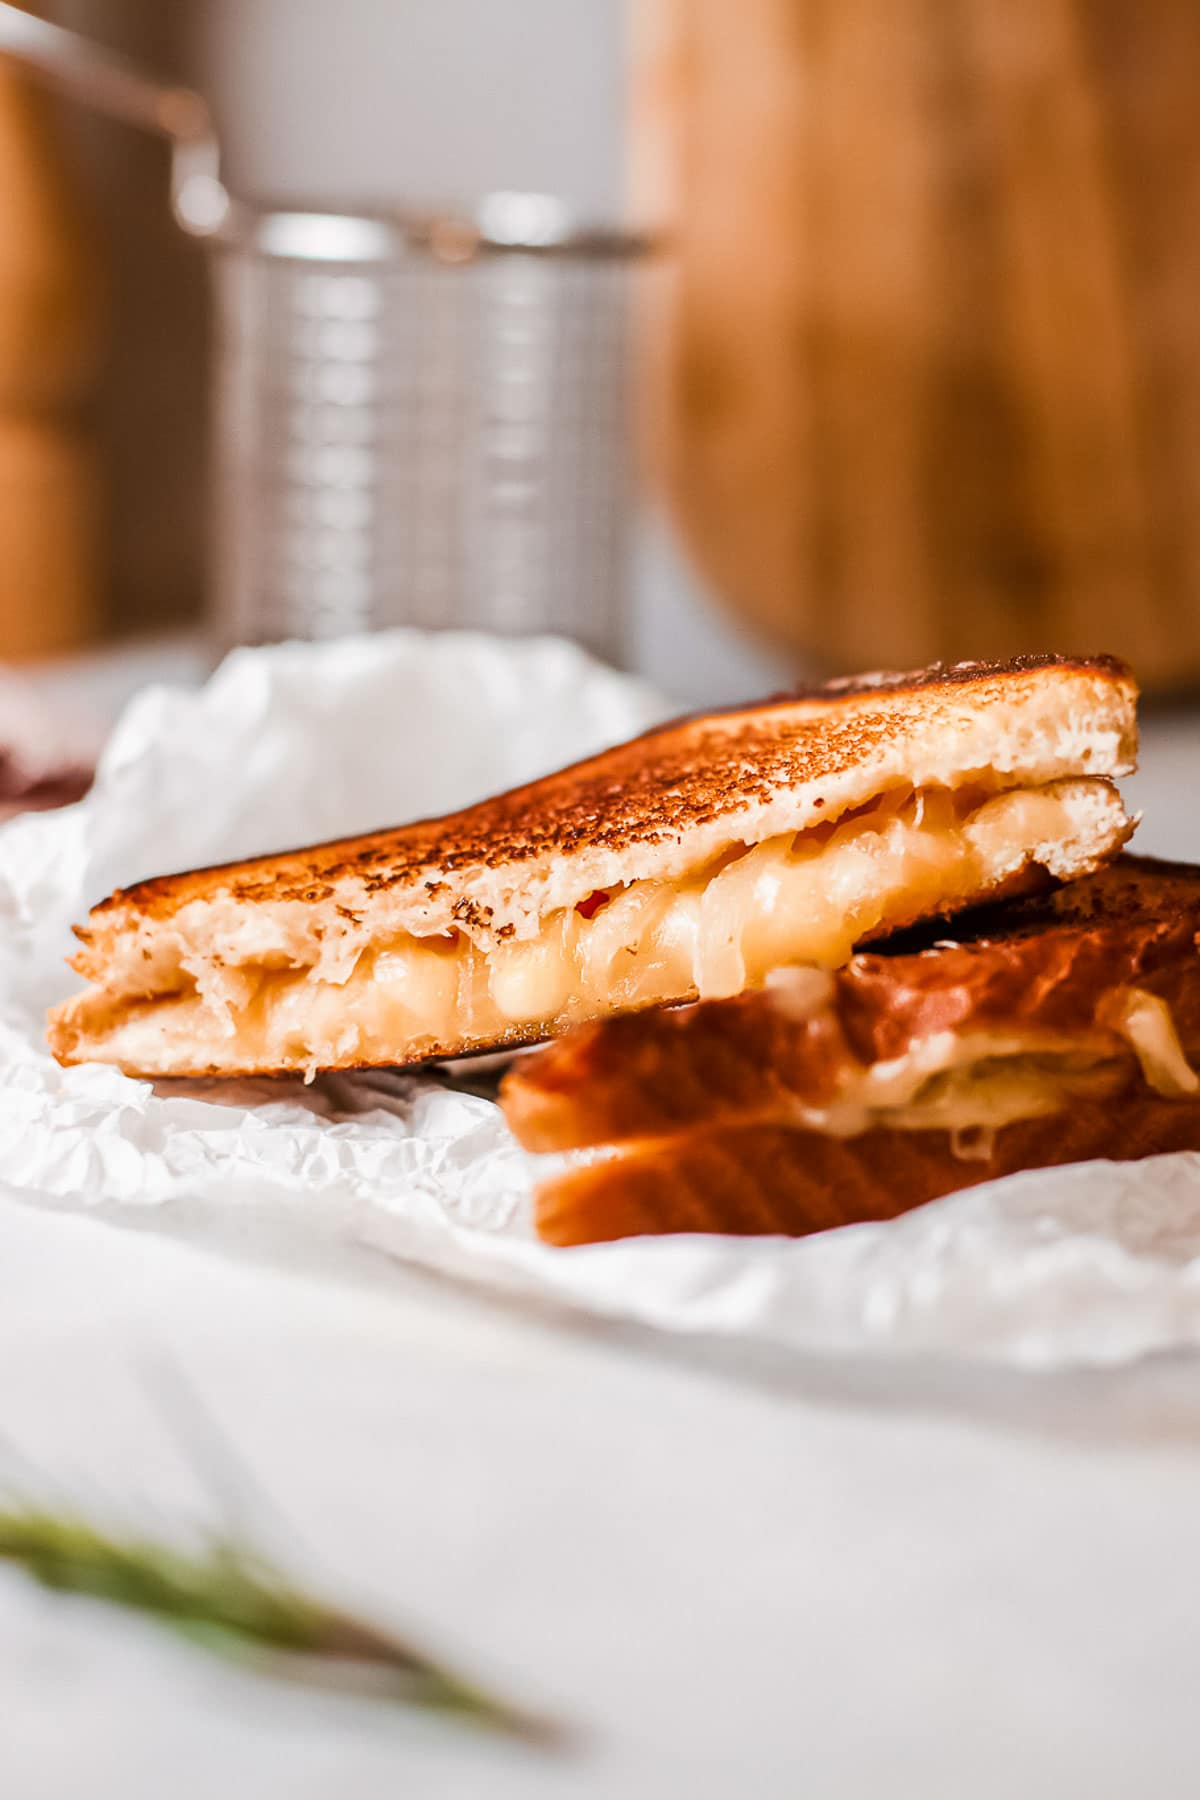 French onion grilled cheese sandwiches halves close up